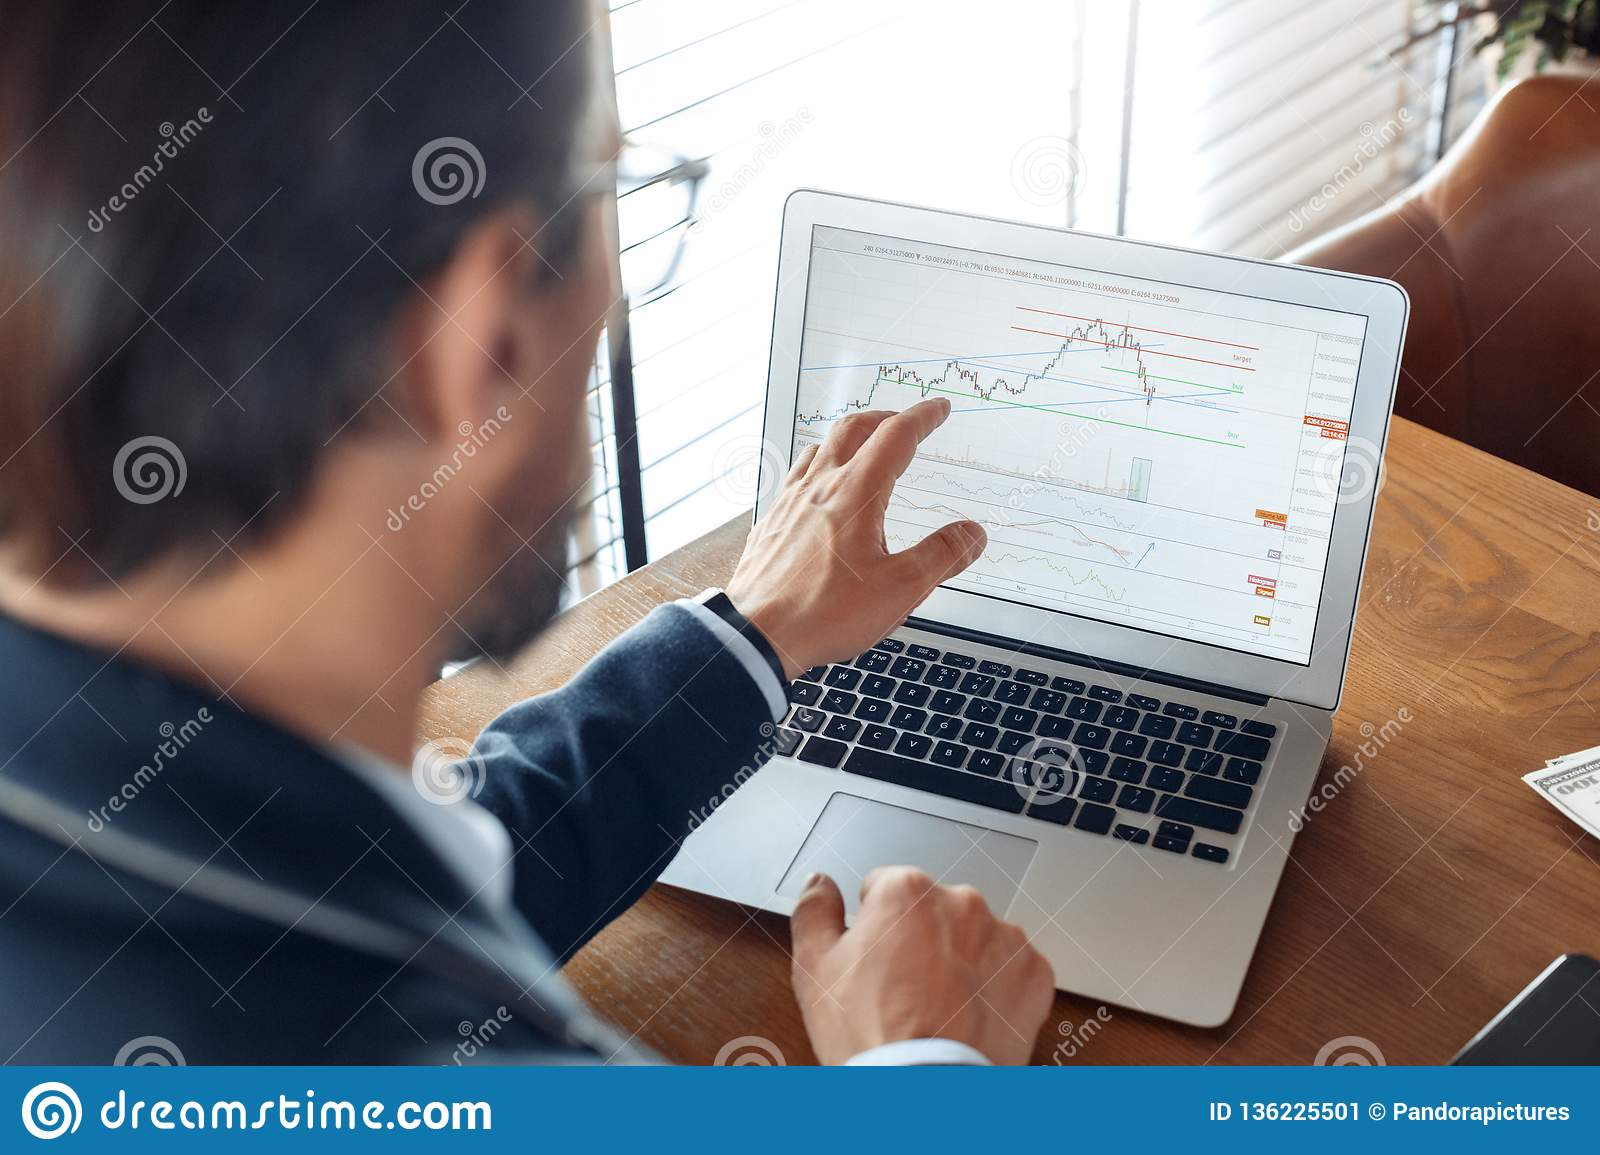 Business Lifestyle. Trader sitting at cafe looking at trading charts on laptop concentrated back view close-up